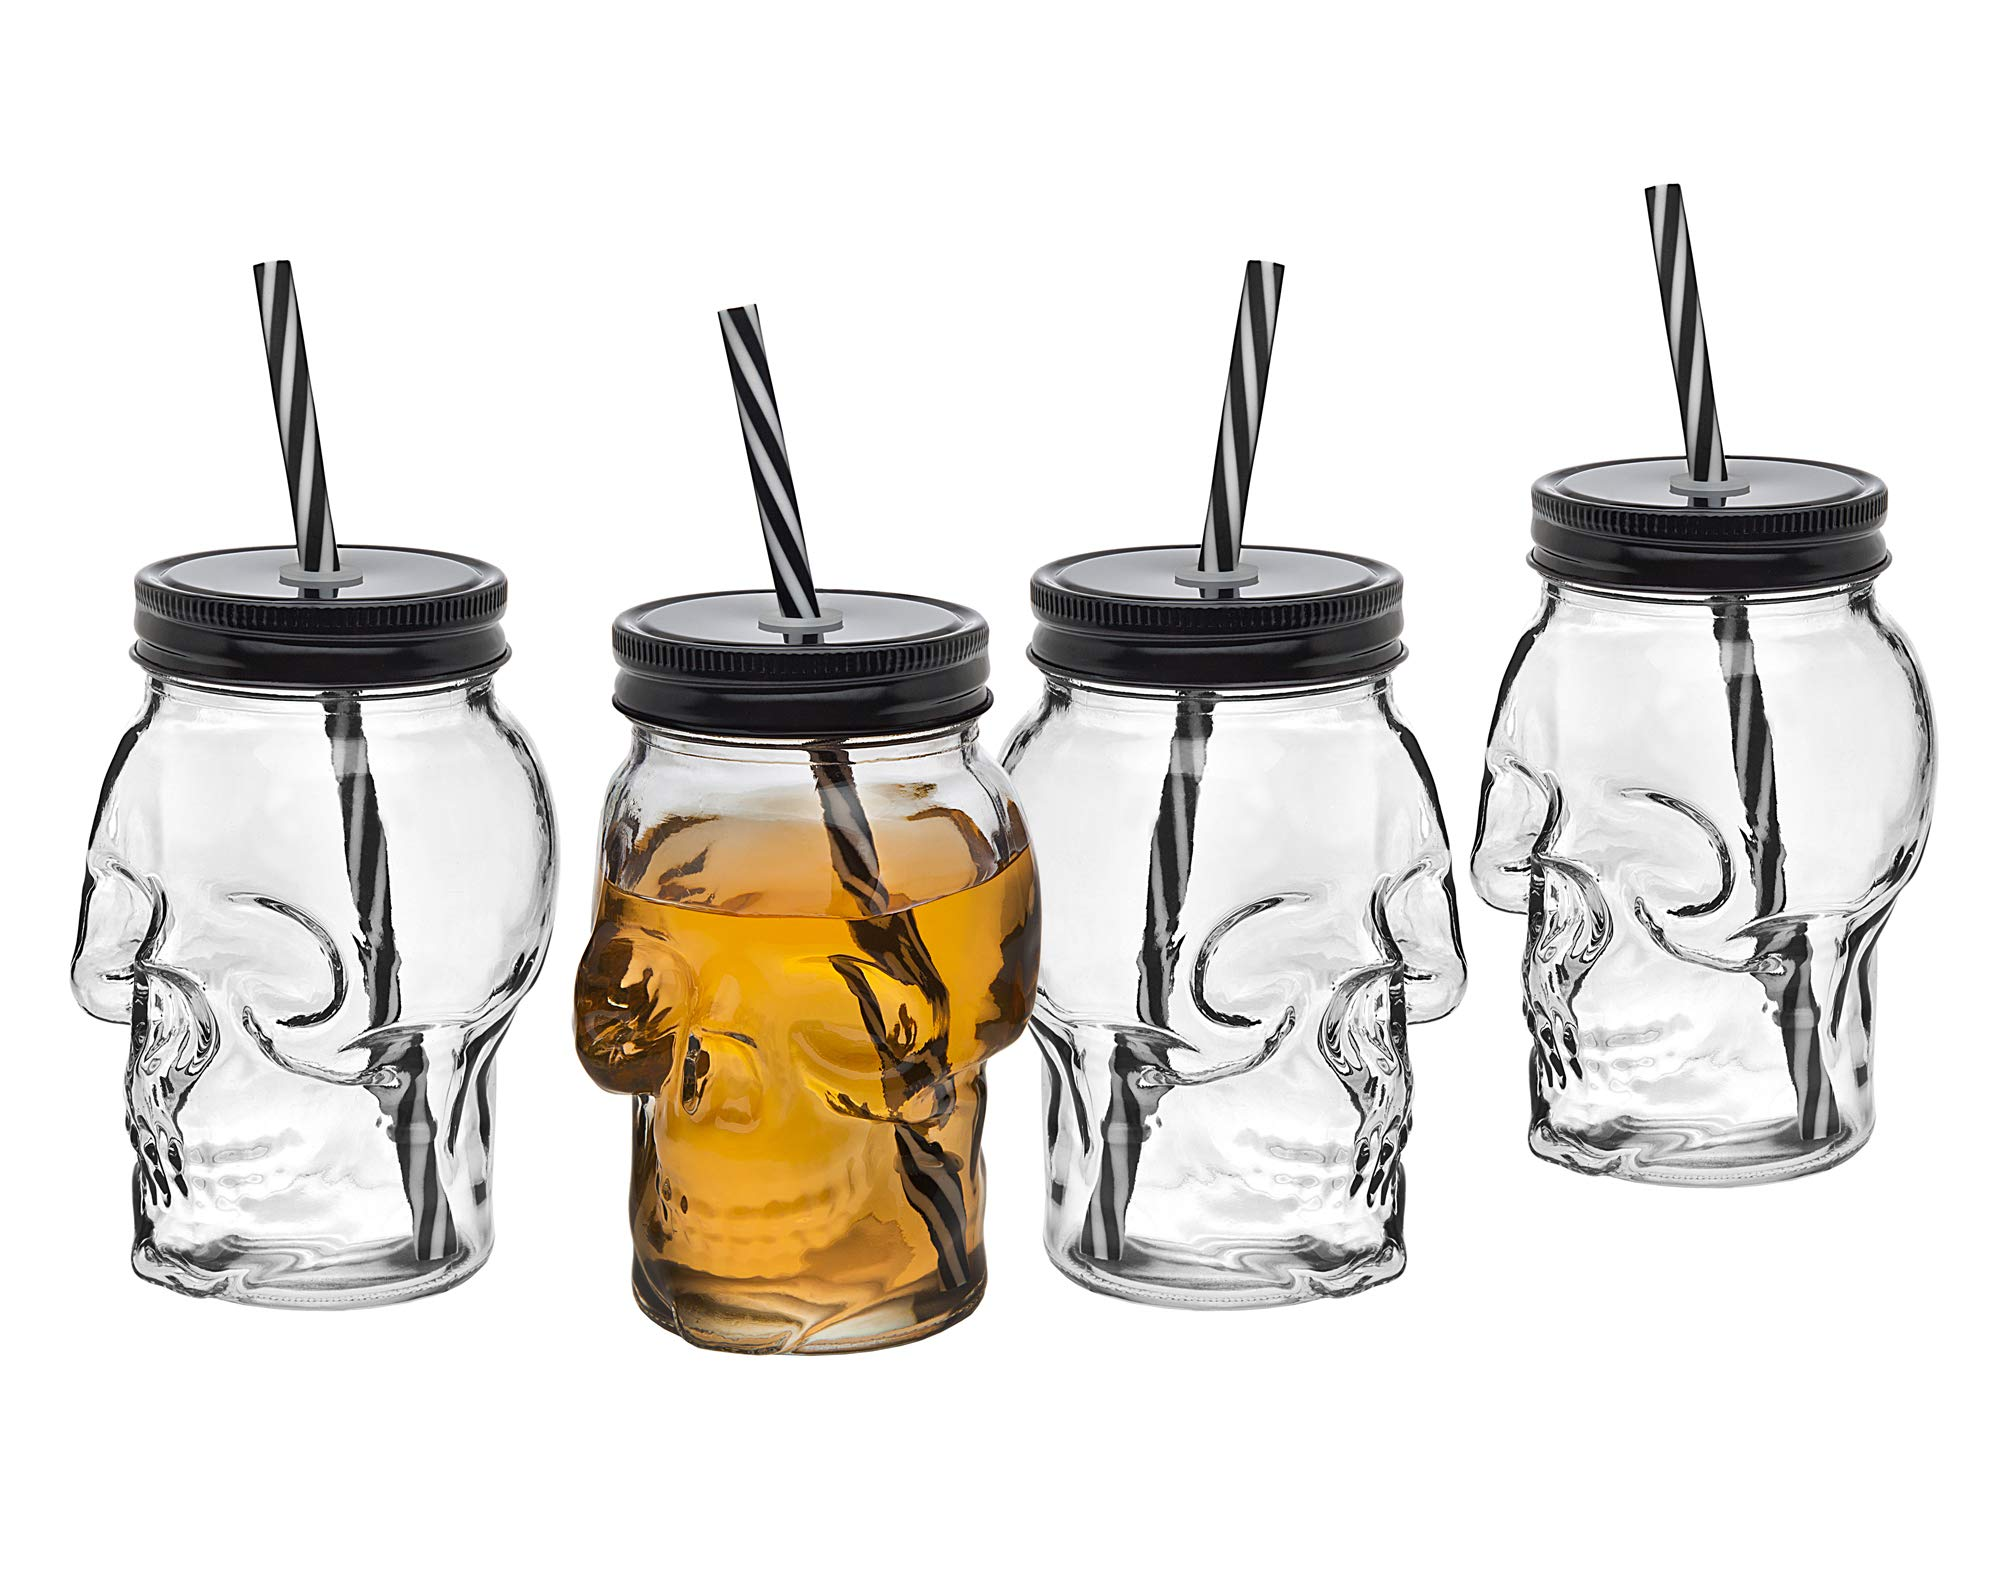 Skull Mason Jar Mug Glass Tumbler Cup with Cover and Straw - 16oz, Set of 4 by Studio by Godinger